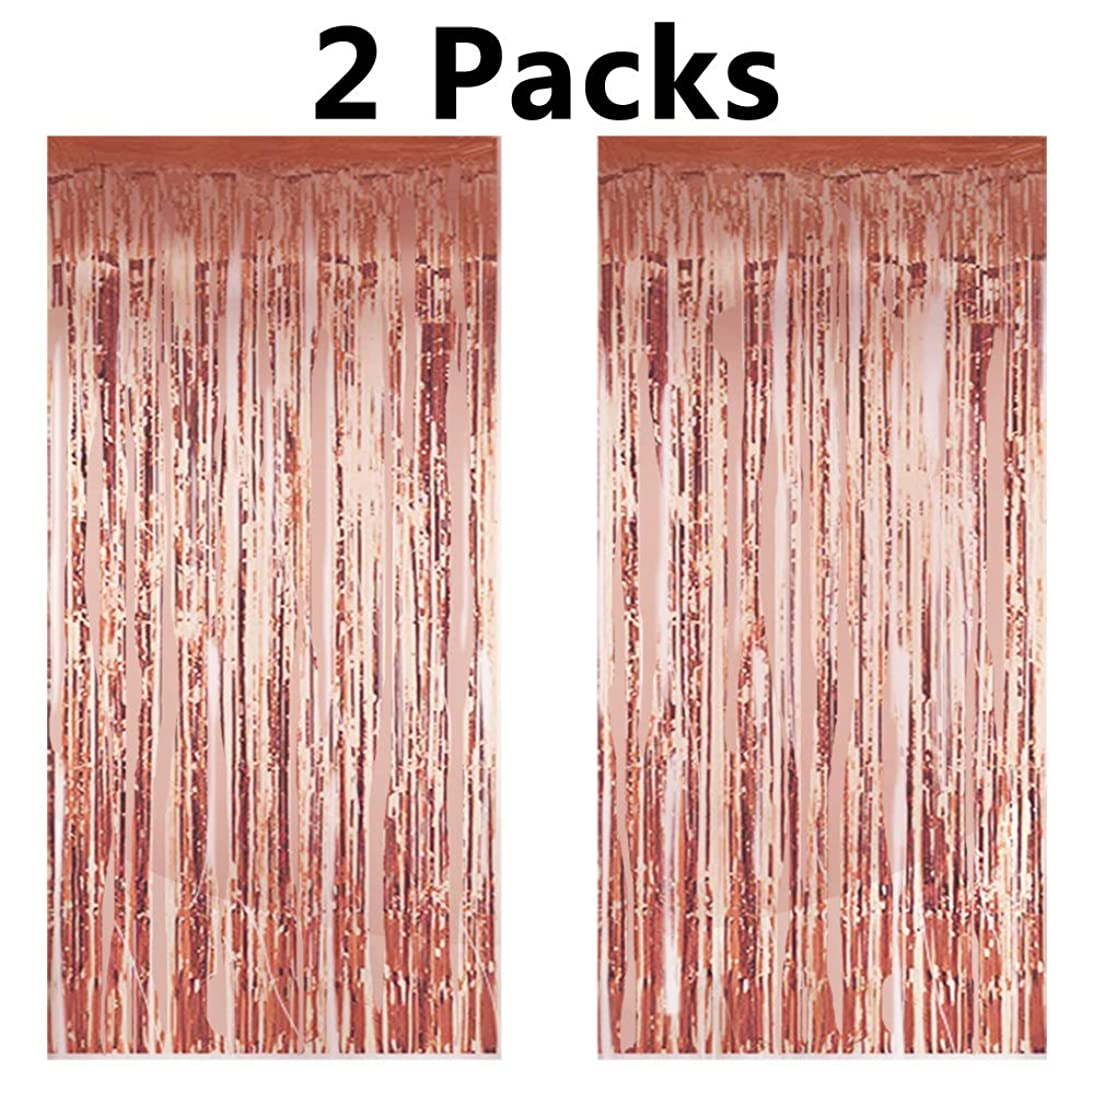 2PCS Rose Gold Foil Fringe Curtains Photo Backdrop,3ft x 8.3ft Metallic Tinsel Curtains for Birthday Wedding Engagement Bachelorette Party Bridal Shower Baby Shower Decorations Favors Supplies